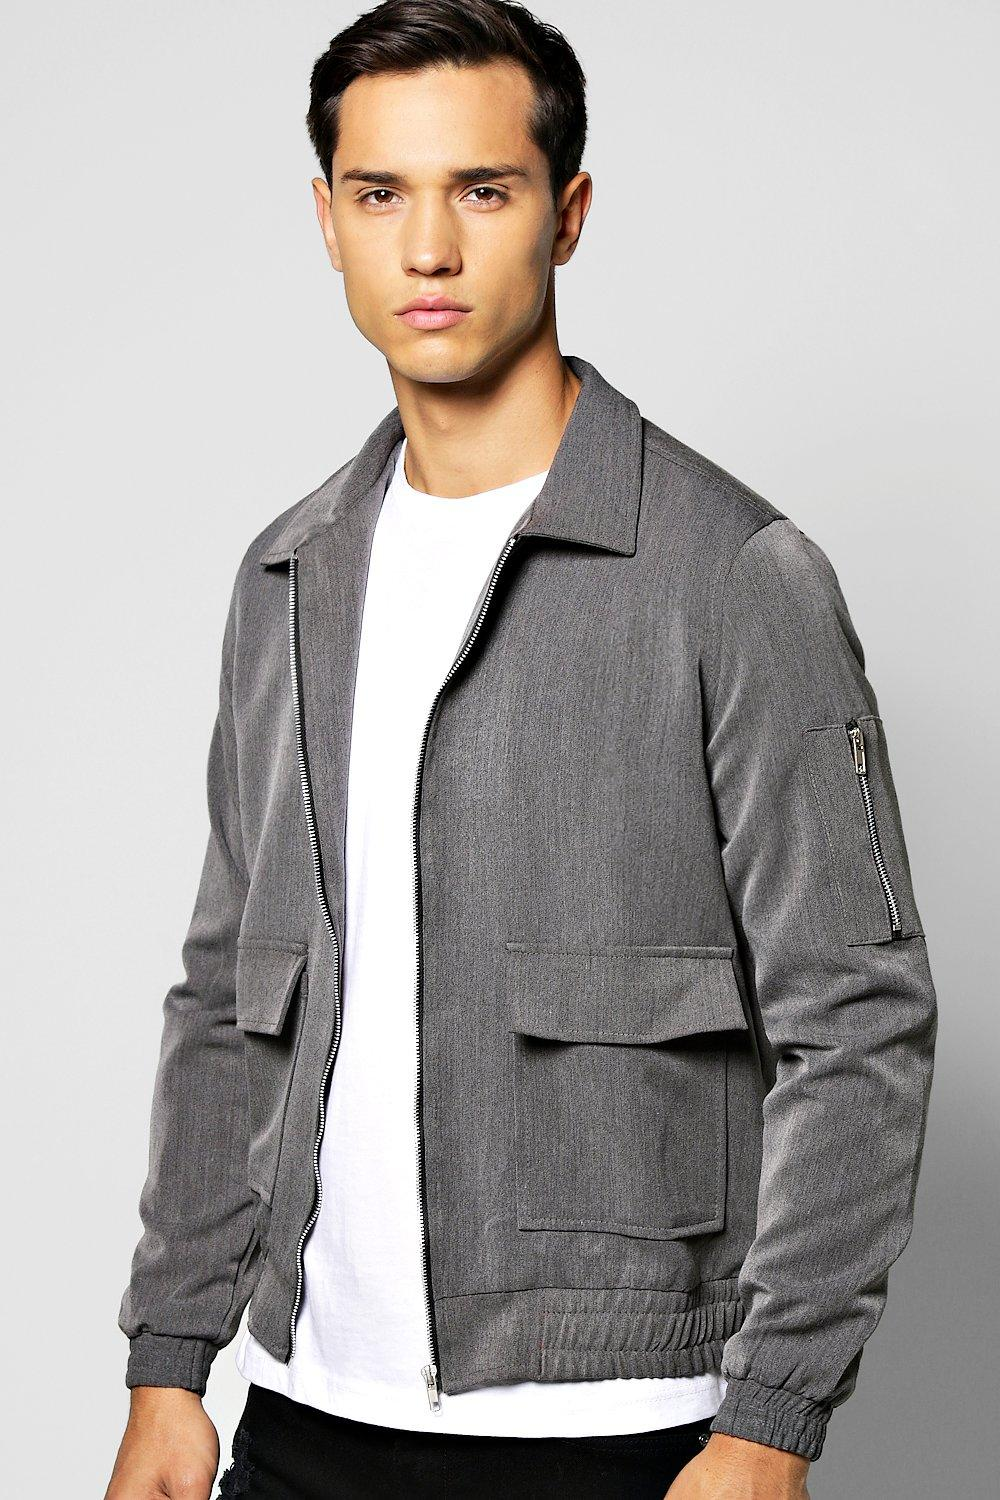 Men's Vintage Style Coats and Jackets Woven Harrington Jacket With Zip Detail Sleeve grey $18.00 AT vintagedancer.com